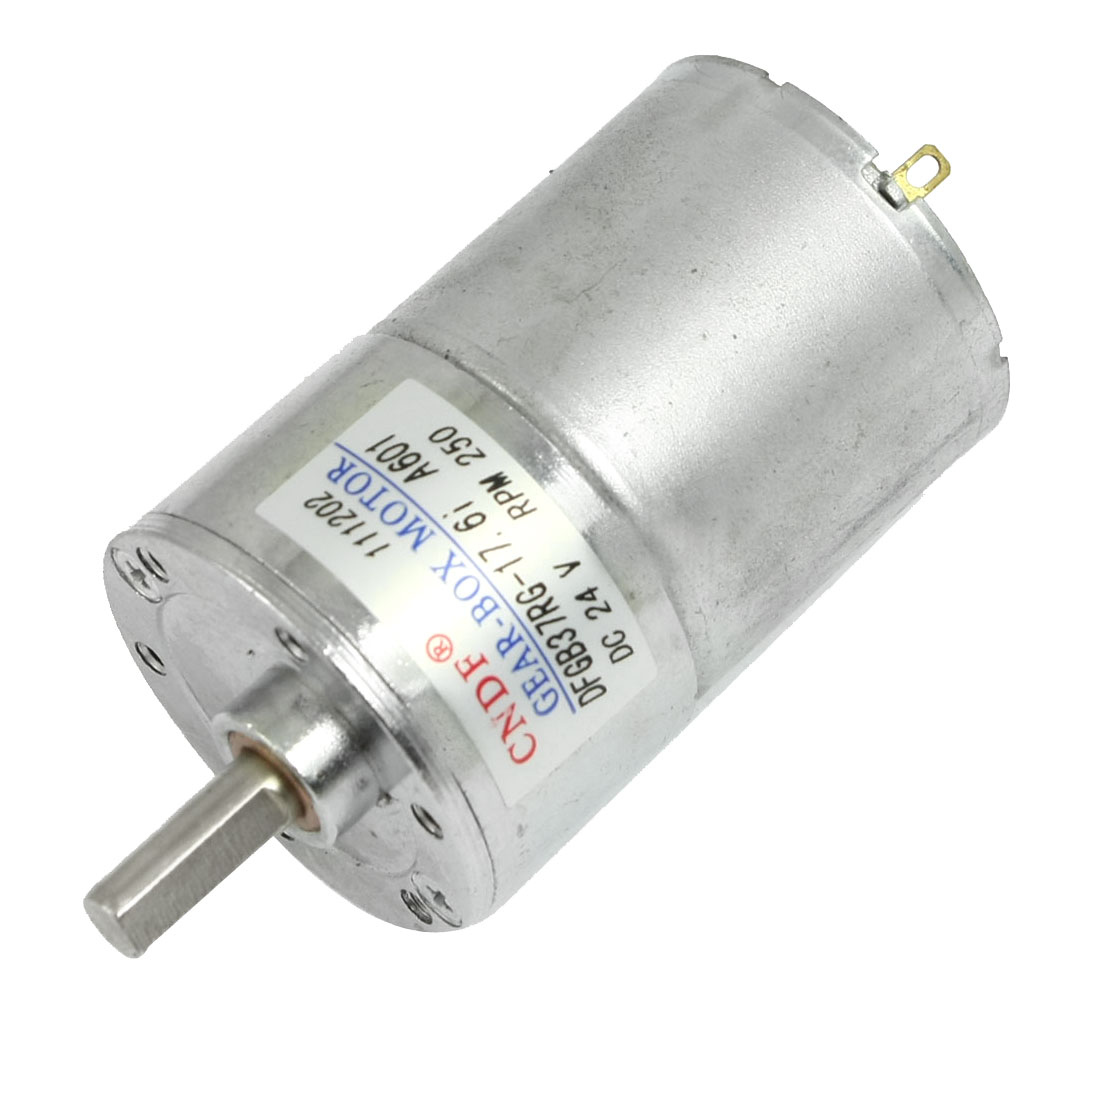 DC 24V 250 RPM 6mm Dia Shaft Magnetic Gearbox Electric Motor 37mm